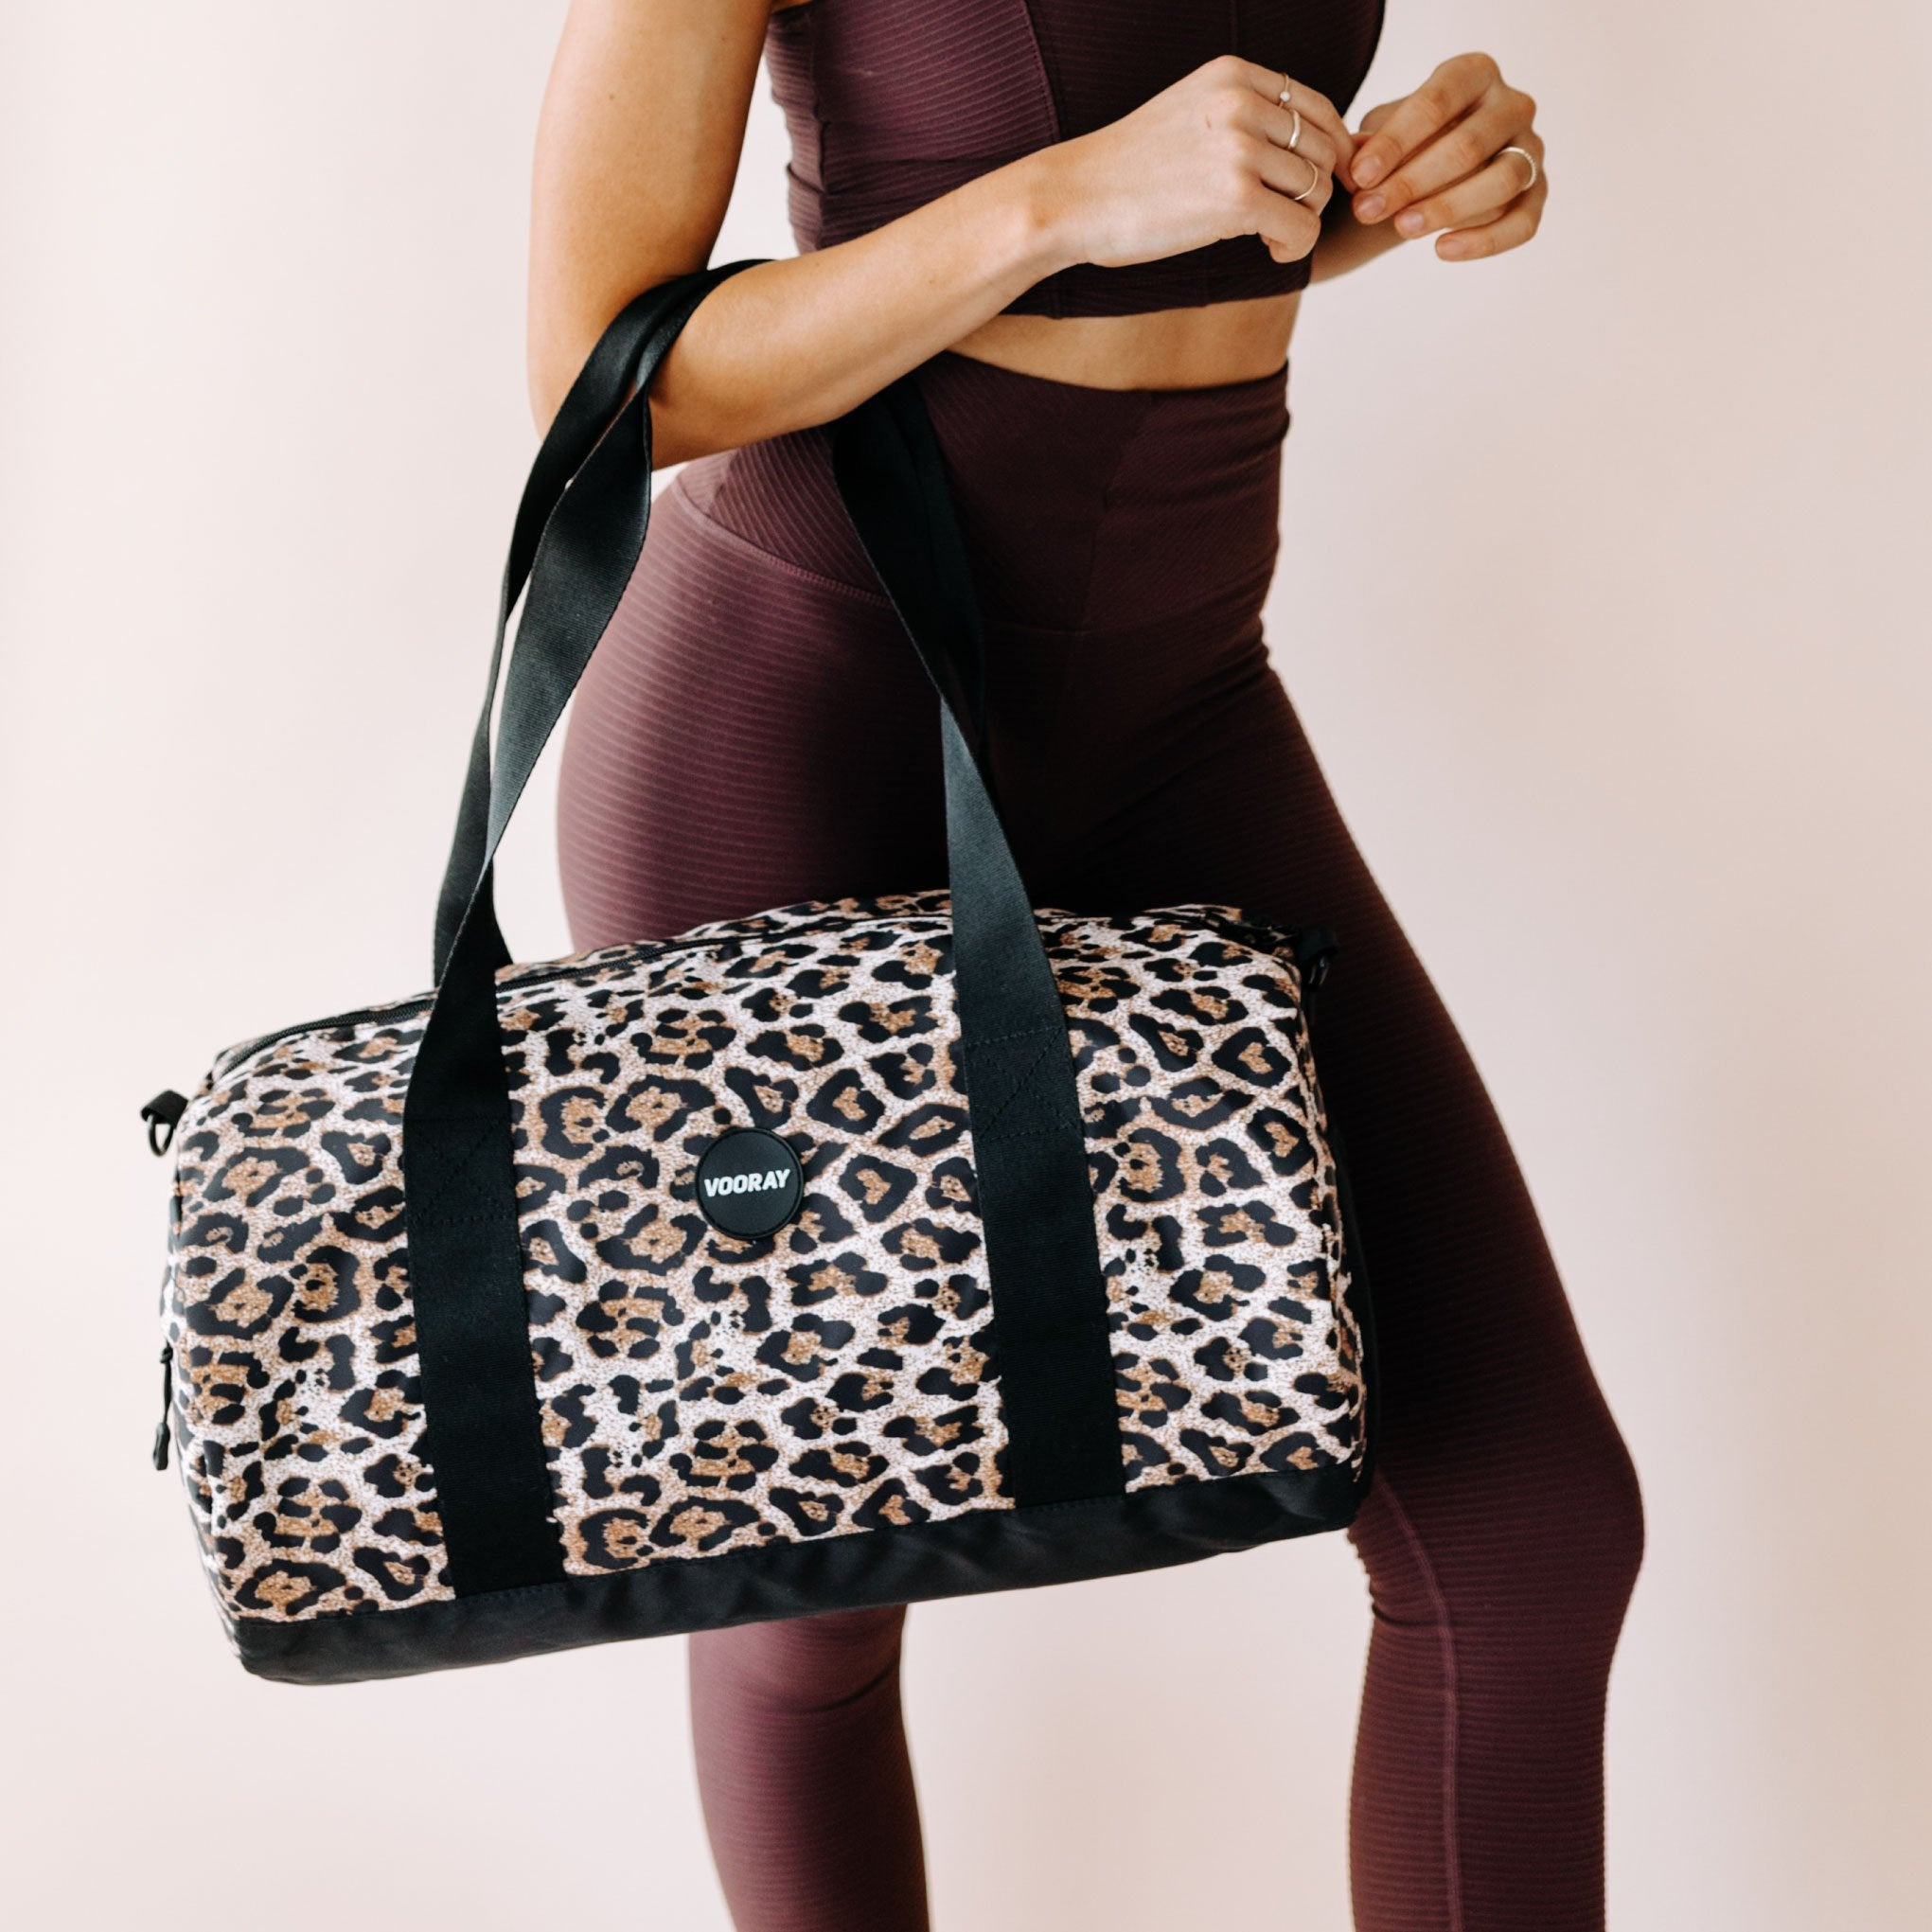 Iconic Barrel Duffel Bag, Cheetah